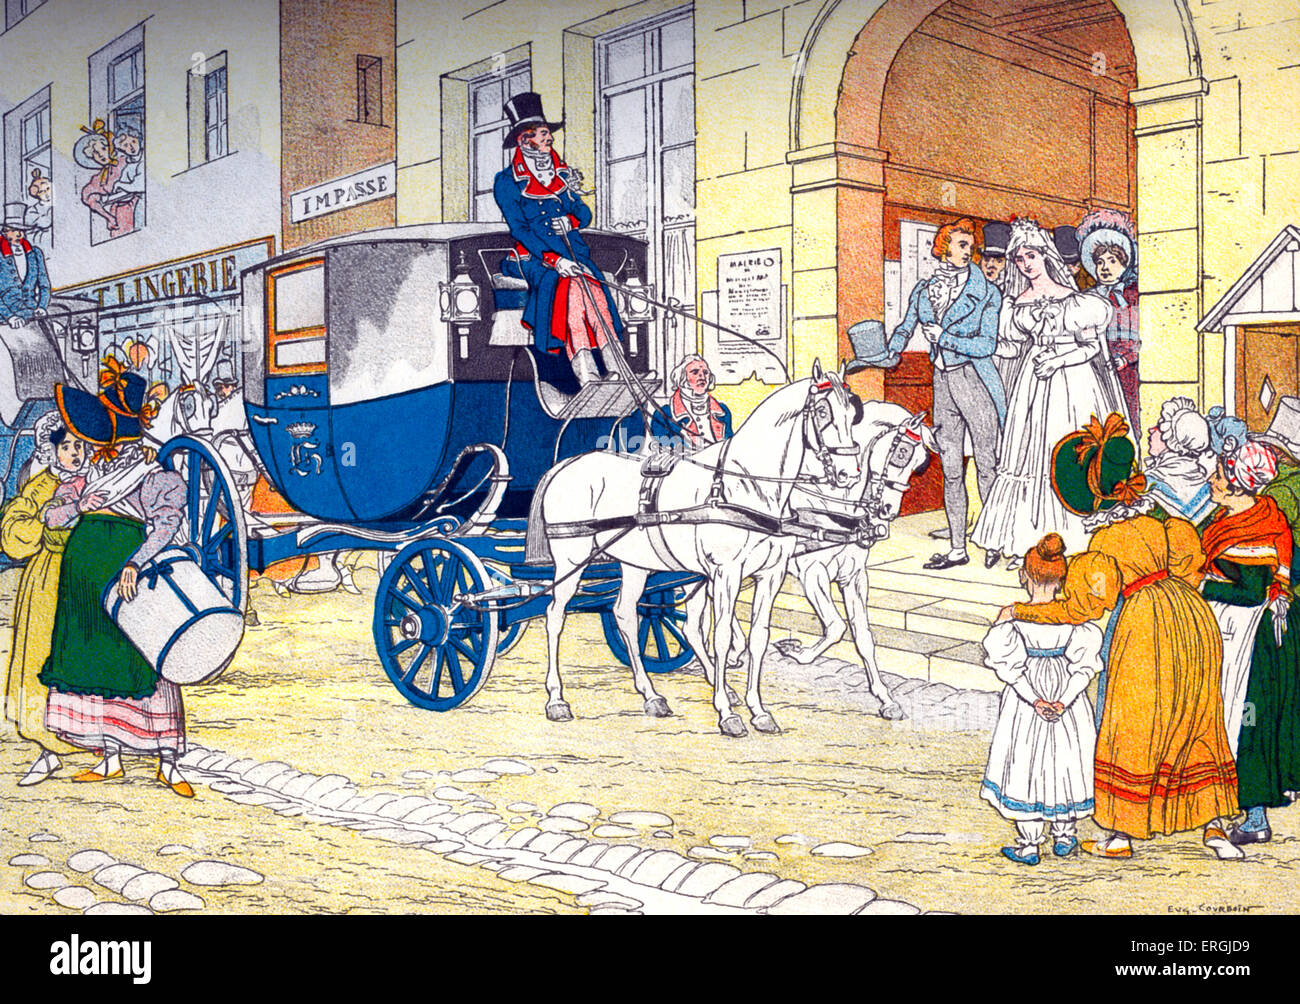 Barouche at wedding  (French: 'Célestine'), 1880.  19th century horse-drawn carriage. From illustration - Stock Image